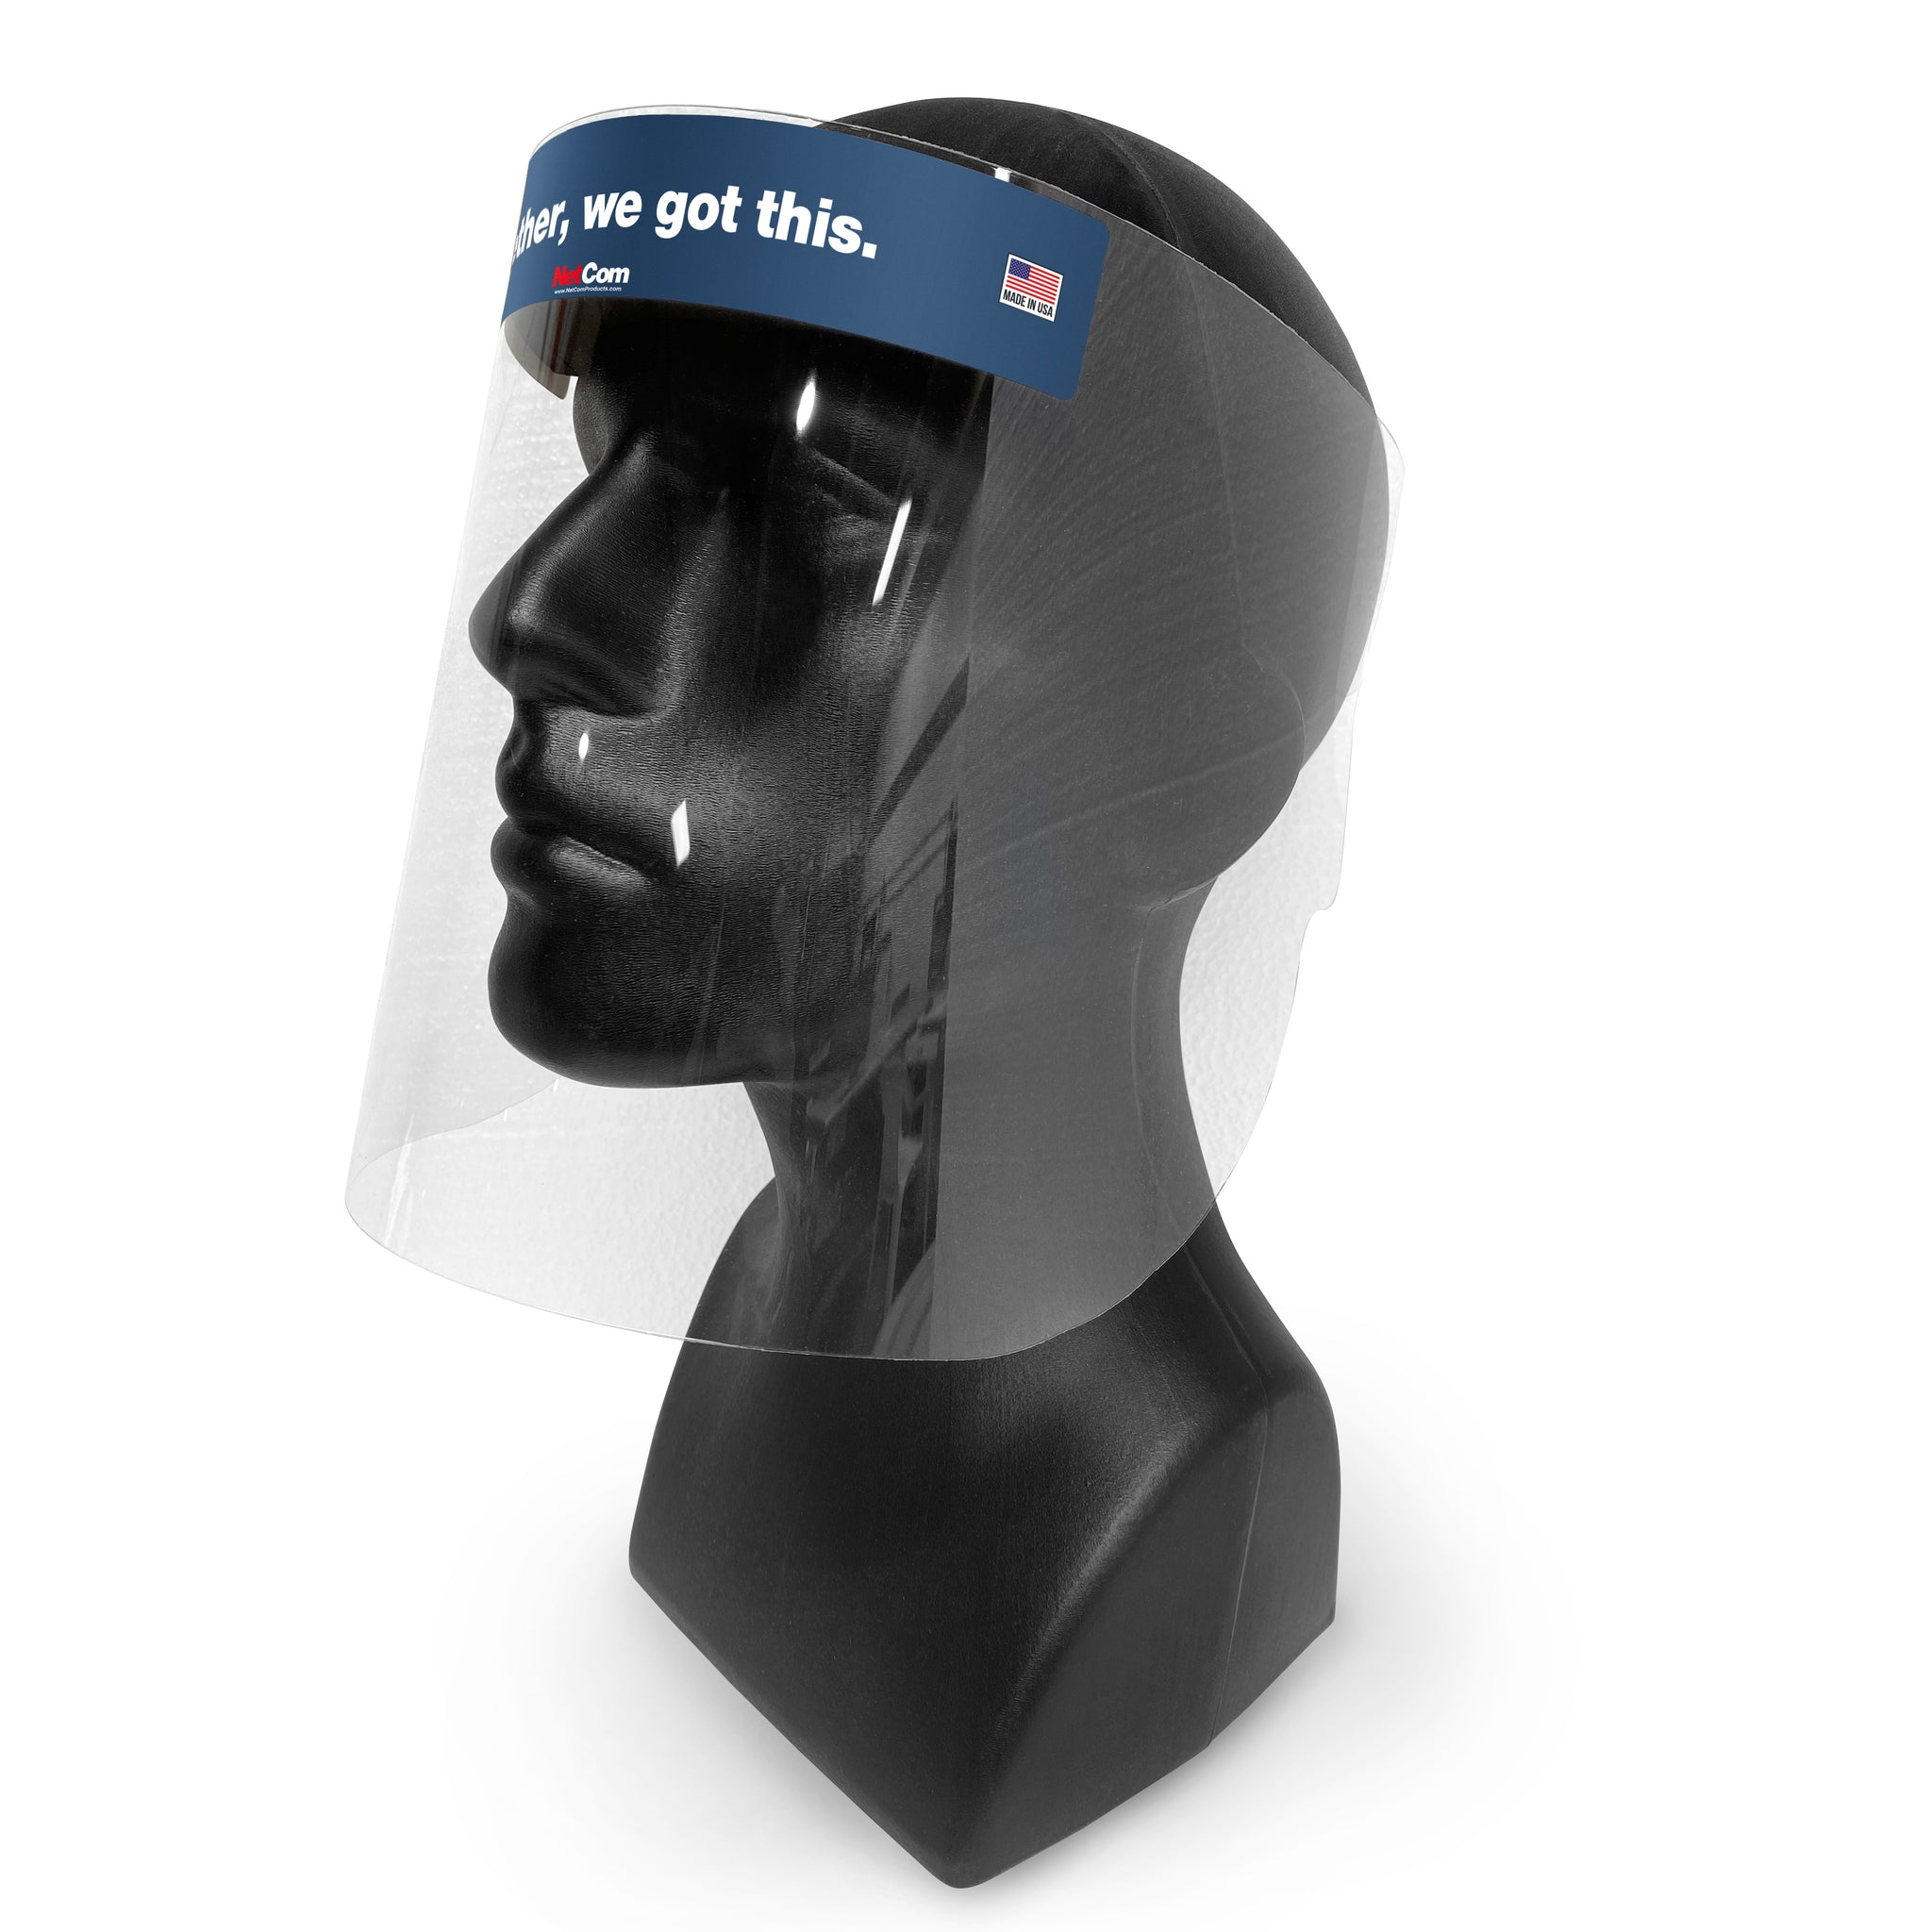 (SINGLE!) Hospital Grade PPE Face Shield